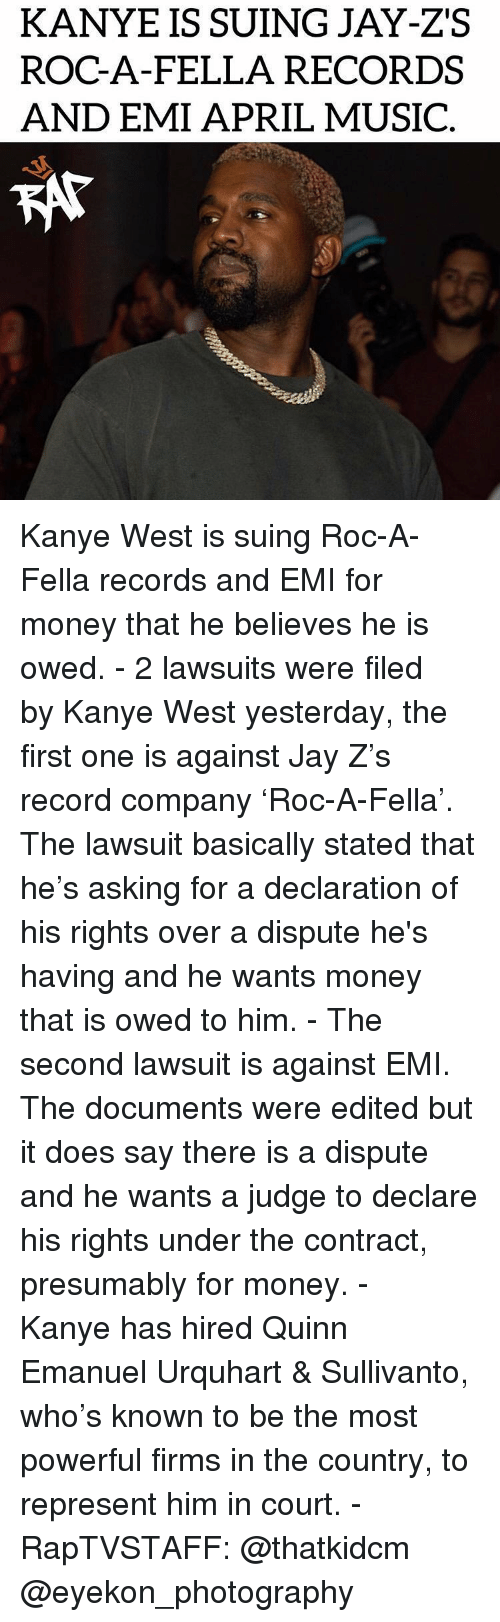 Declaration: KANYE IS SUING JAY-ZS  ROC-A-FELLA RECORDS  AND EMI APRIL MUSIC  KAT Kanye West is suing Roc-A-Fella records and EMI for money that he believes he is owed.⁣ -⁣ 2 lawsuits were filed by Kanye West yesterday, the first one is against Jay Z's record company 'Roc-A-Fella'. The lawsuit basically stated that he's asking for a declaration of his rights over a dispute he's having and he wants money that is owed to him.⁣ -⁣ The second lawsuit is against EMI. The documents were edited but it does say there is a dispute and he wants a judge to declare his rights under the contract, presumably for money.⁣ -⁣ Kanye has hired Quinn Emanuel Urquhart & Sullivanto, who's known to be the most powerful firms in the country, to represent him in court.⁣ -⁣ RapTVSTAFF: @thatkidcm⁣ @eyekon_photography⁣